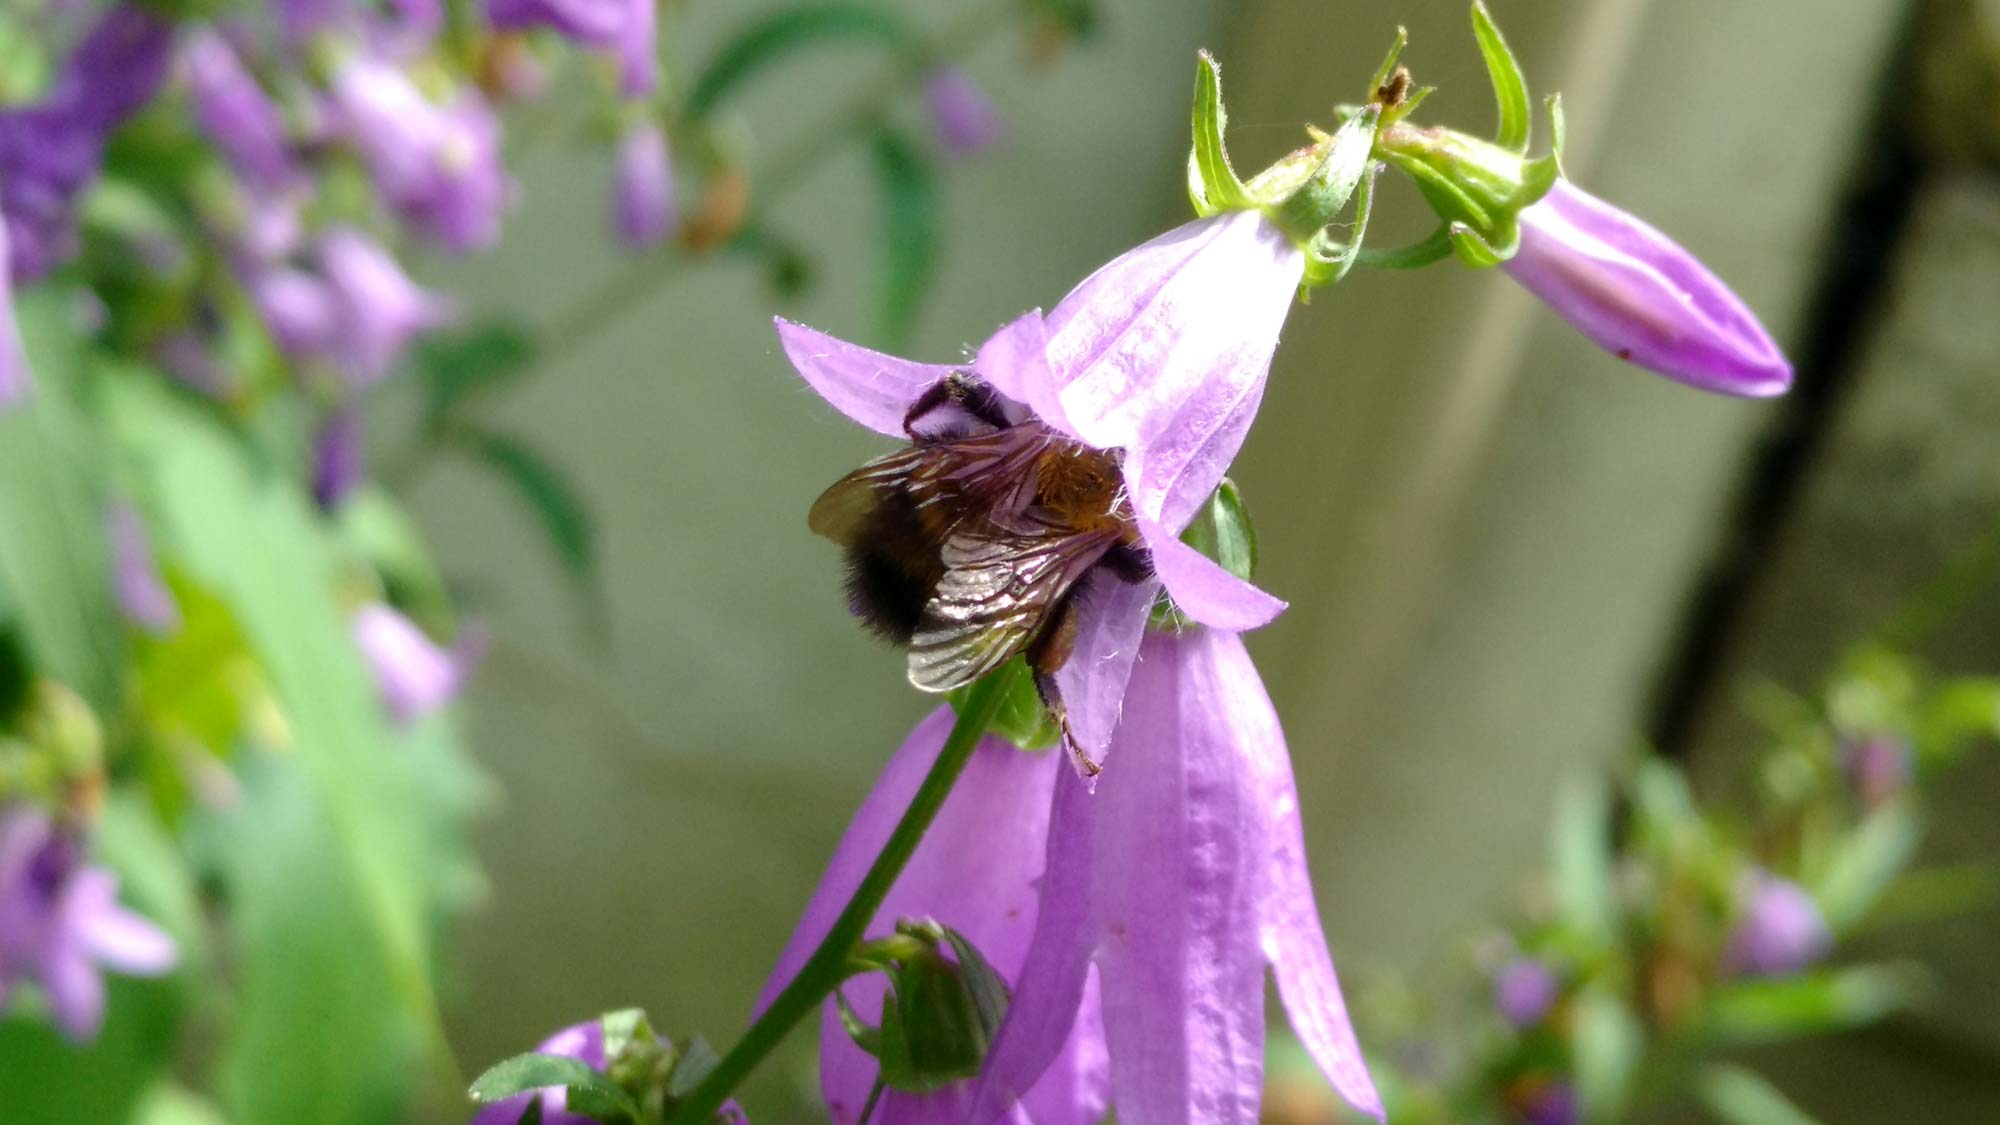 A bumblebee pollinates a creeping bellflower in Ann Arbor. Image credit: Paul Glaum